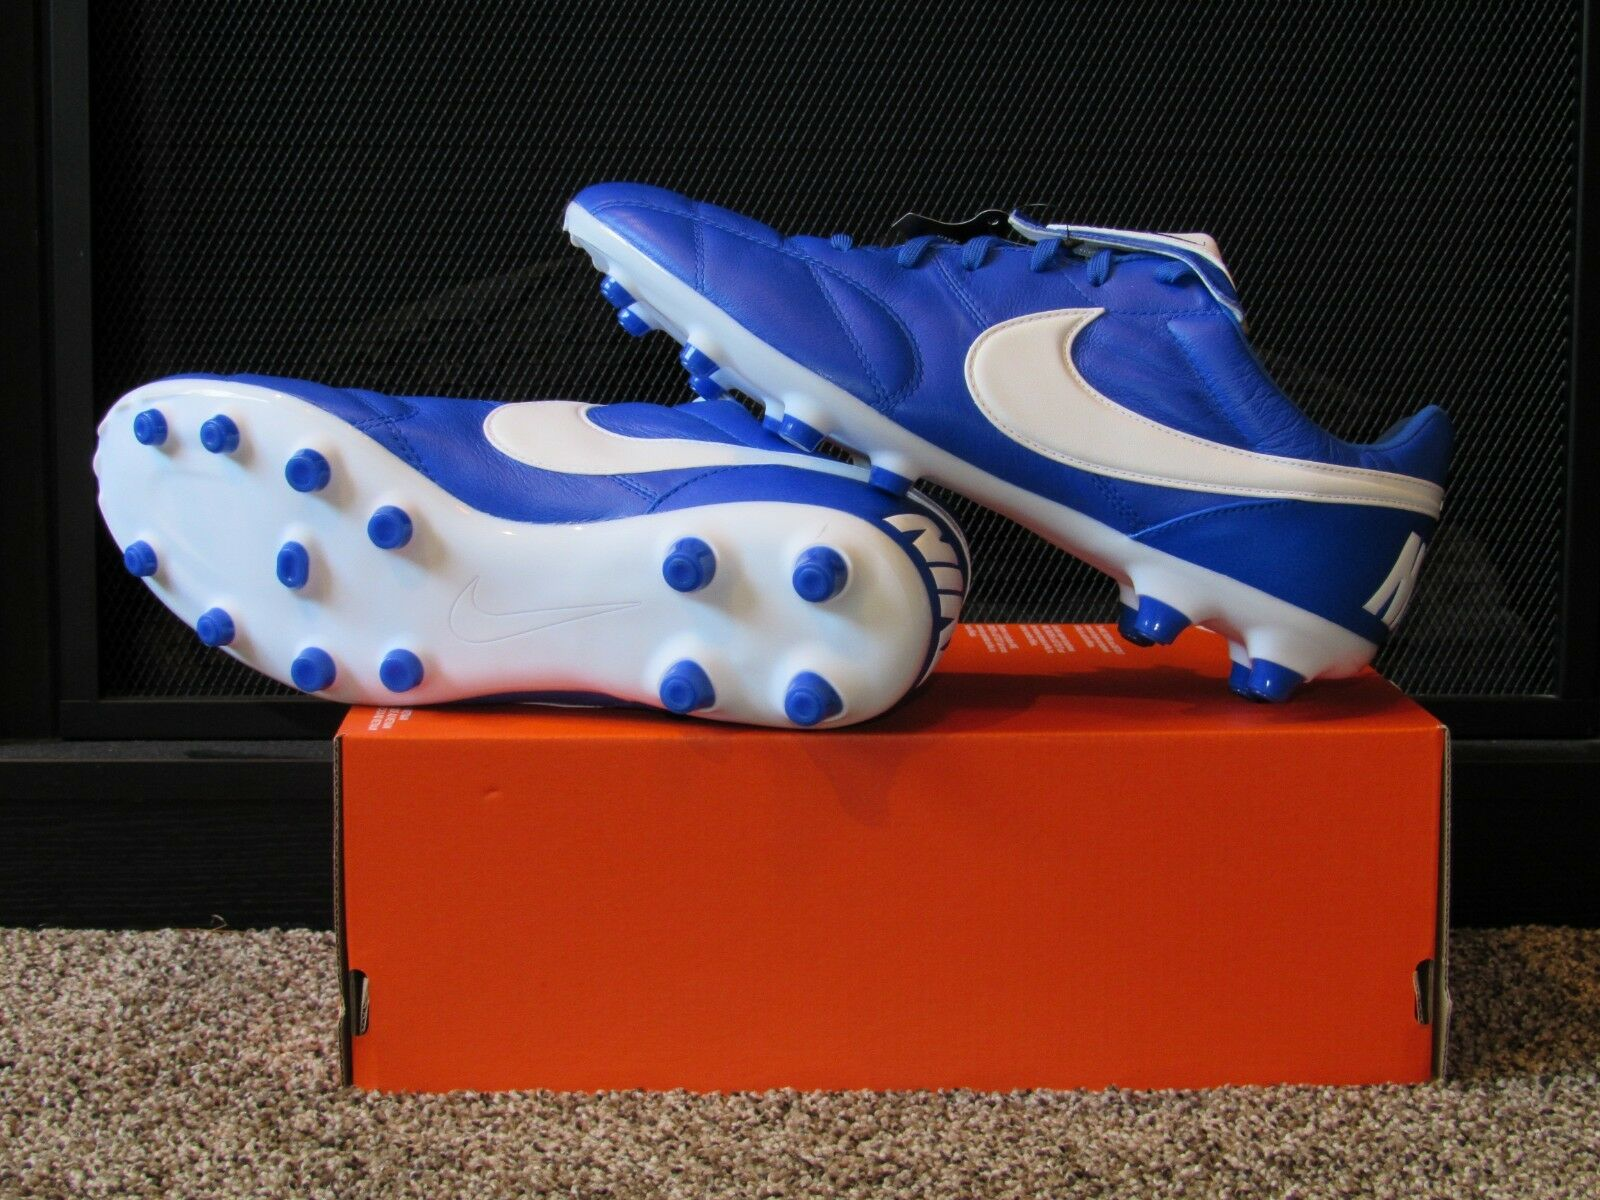 Men's THE NIKE PREMIER II FG SOCCER CLEATS   SPIKES - 917803 407 Futbol - bluee